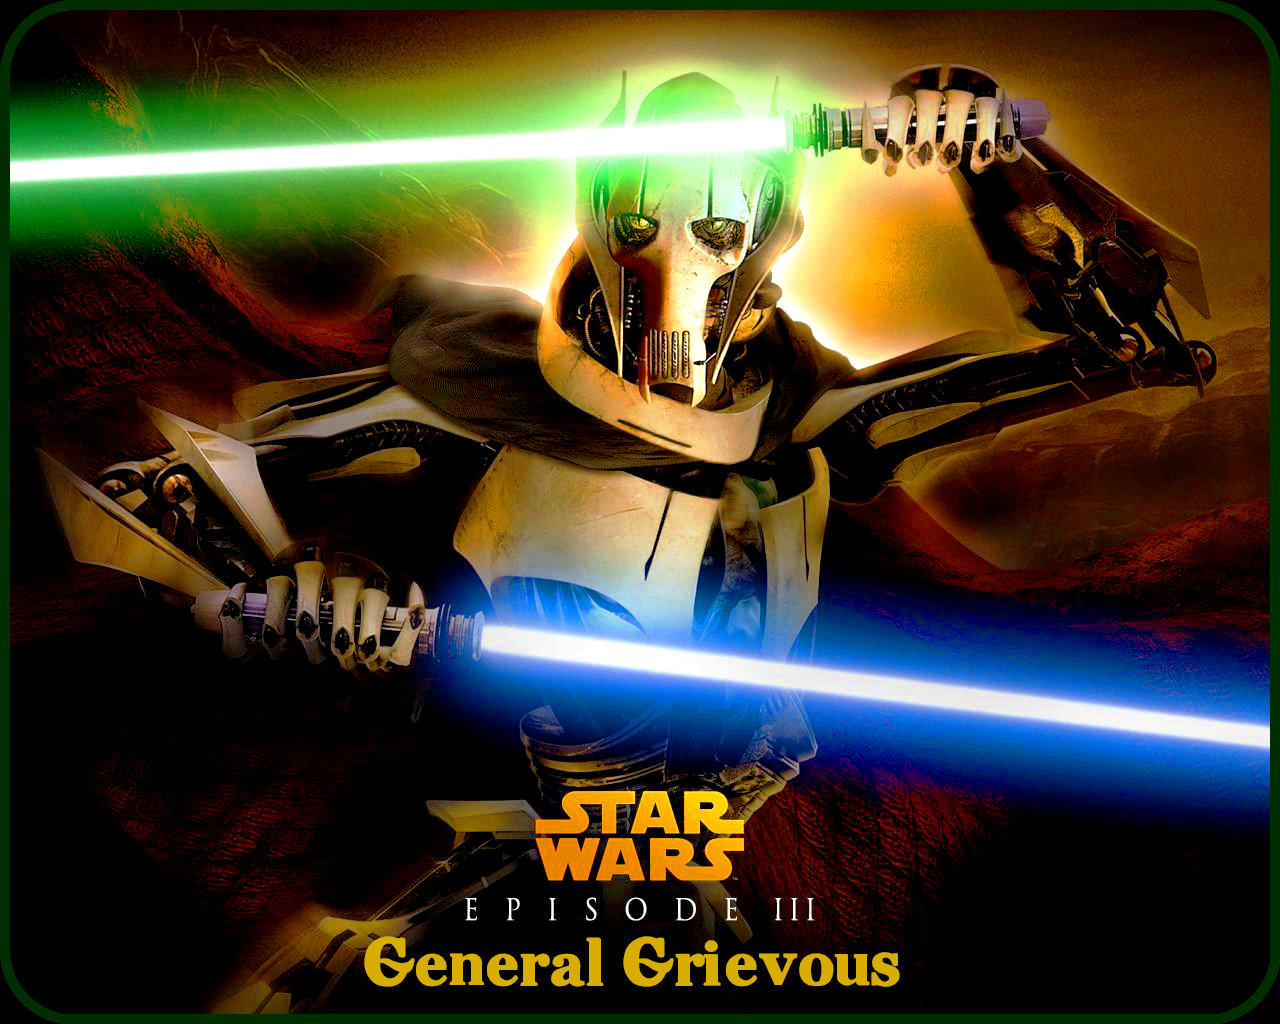 General Grievous Wallpapers Hd For Desktop Backgrounds